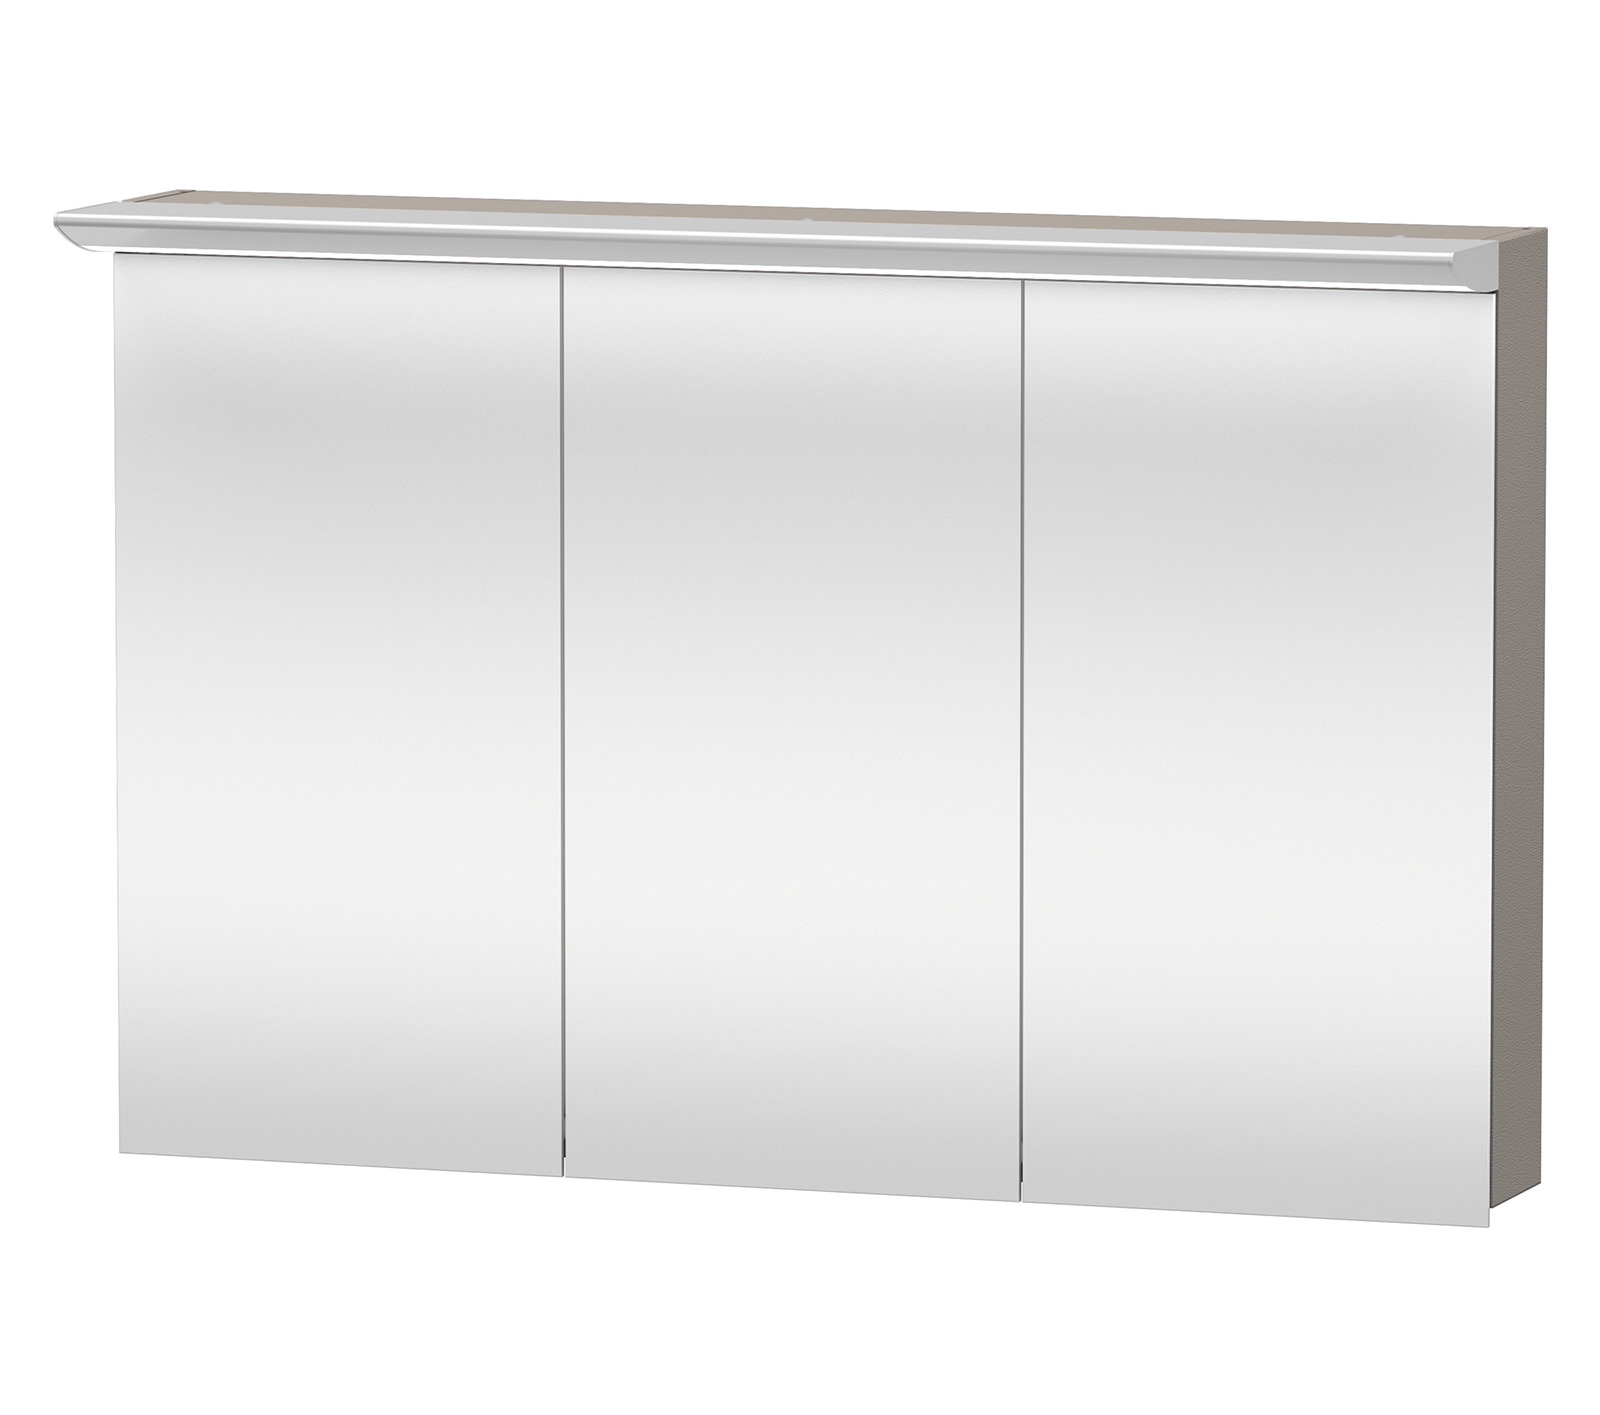 3 Door Mirrored Bathroom Cabinet Duravit Darling New 1200mm 3 Door Mirror Cabinet Dn753801414